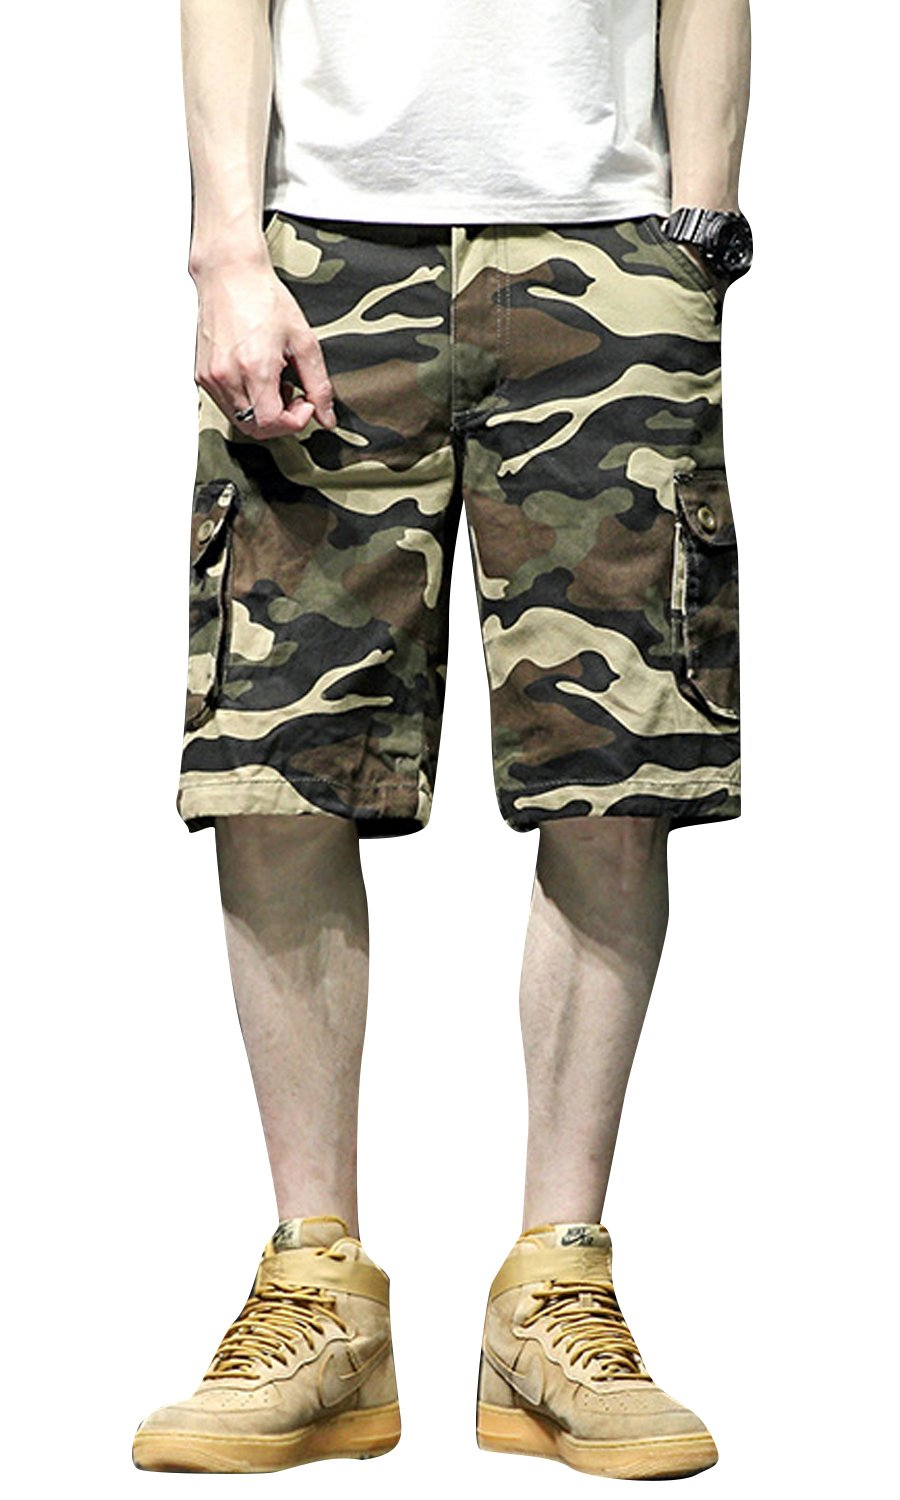 Les umes Men's Casual Summer Work Baggy Bermuda Cargo Combat Camo Chino Shorts